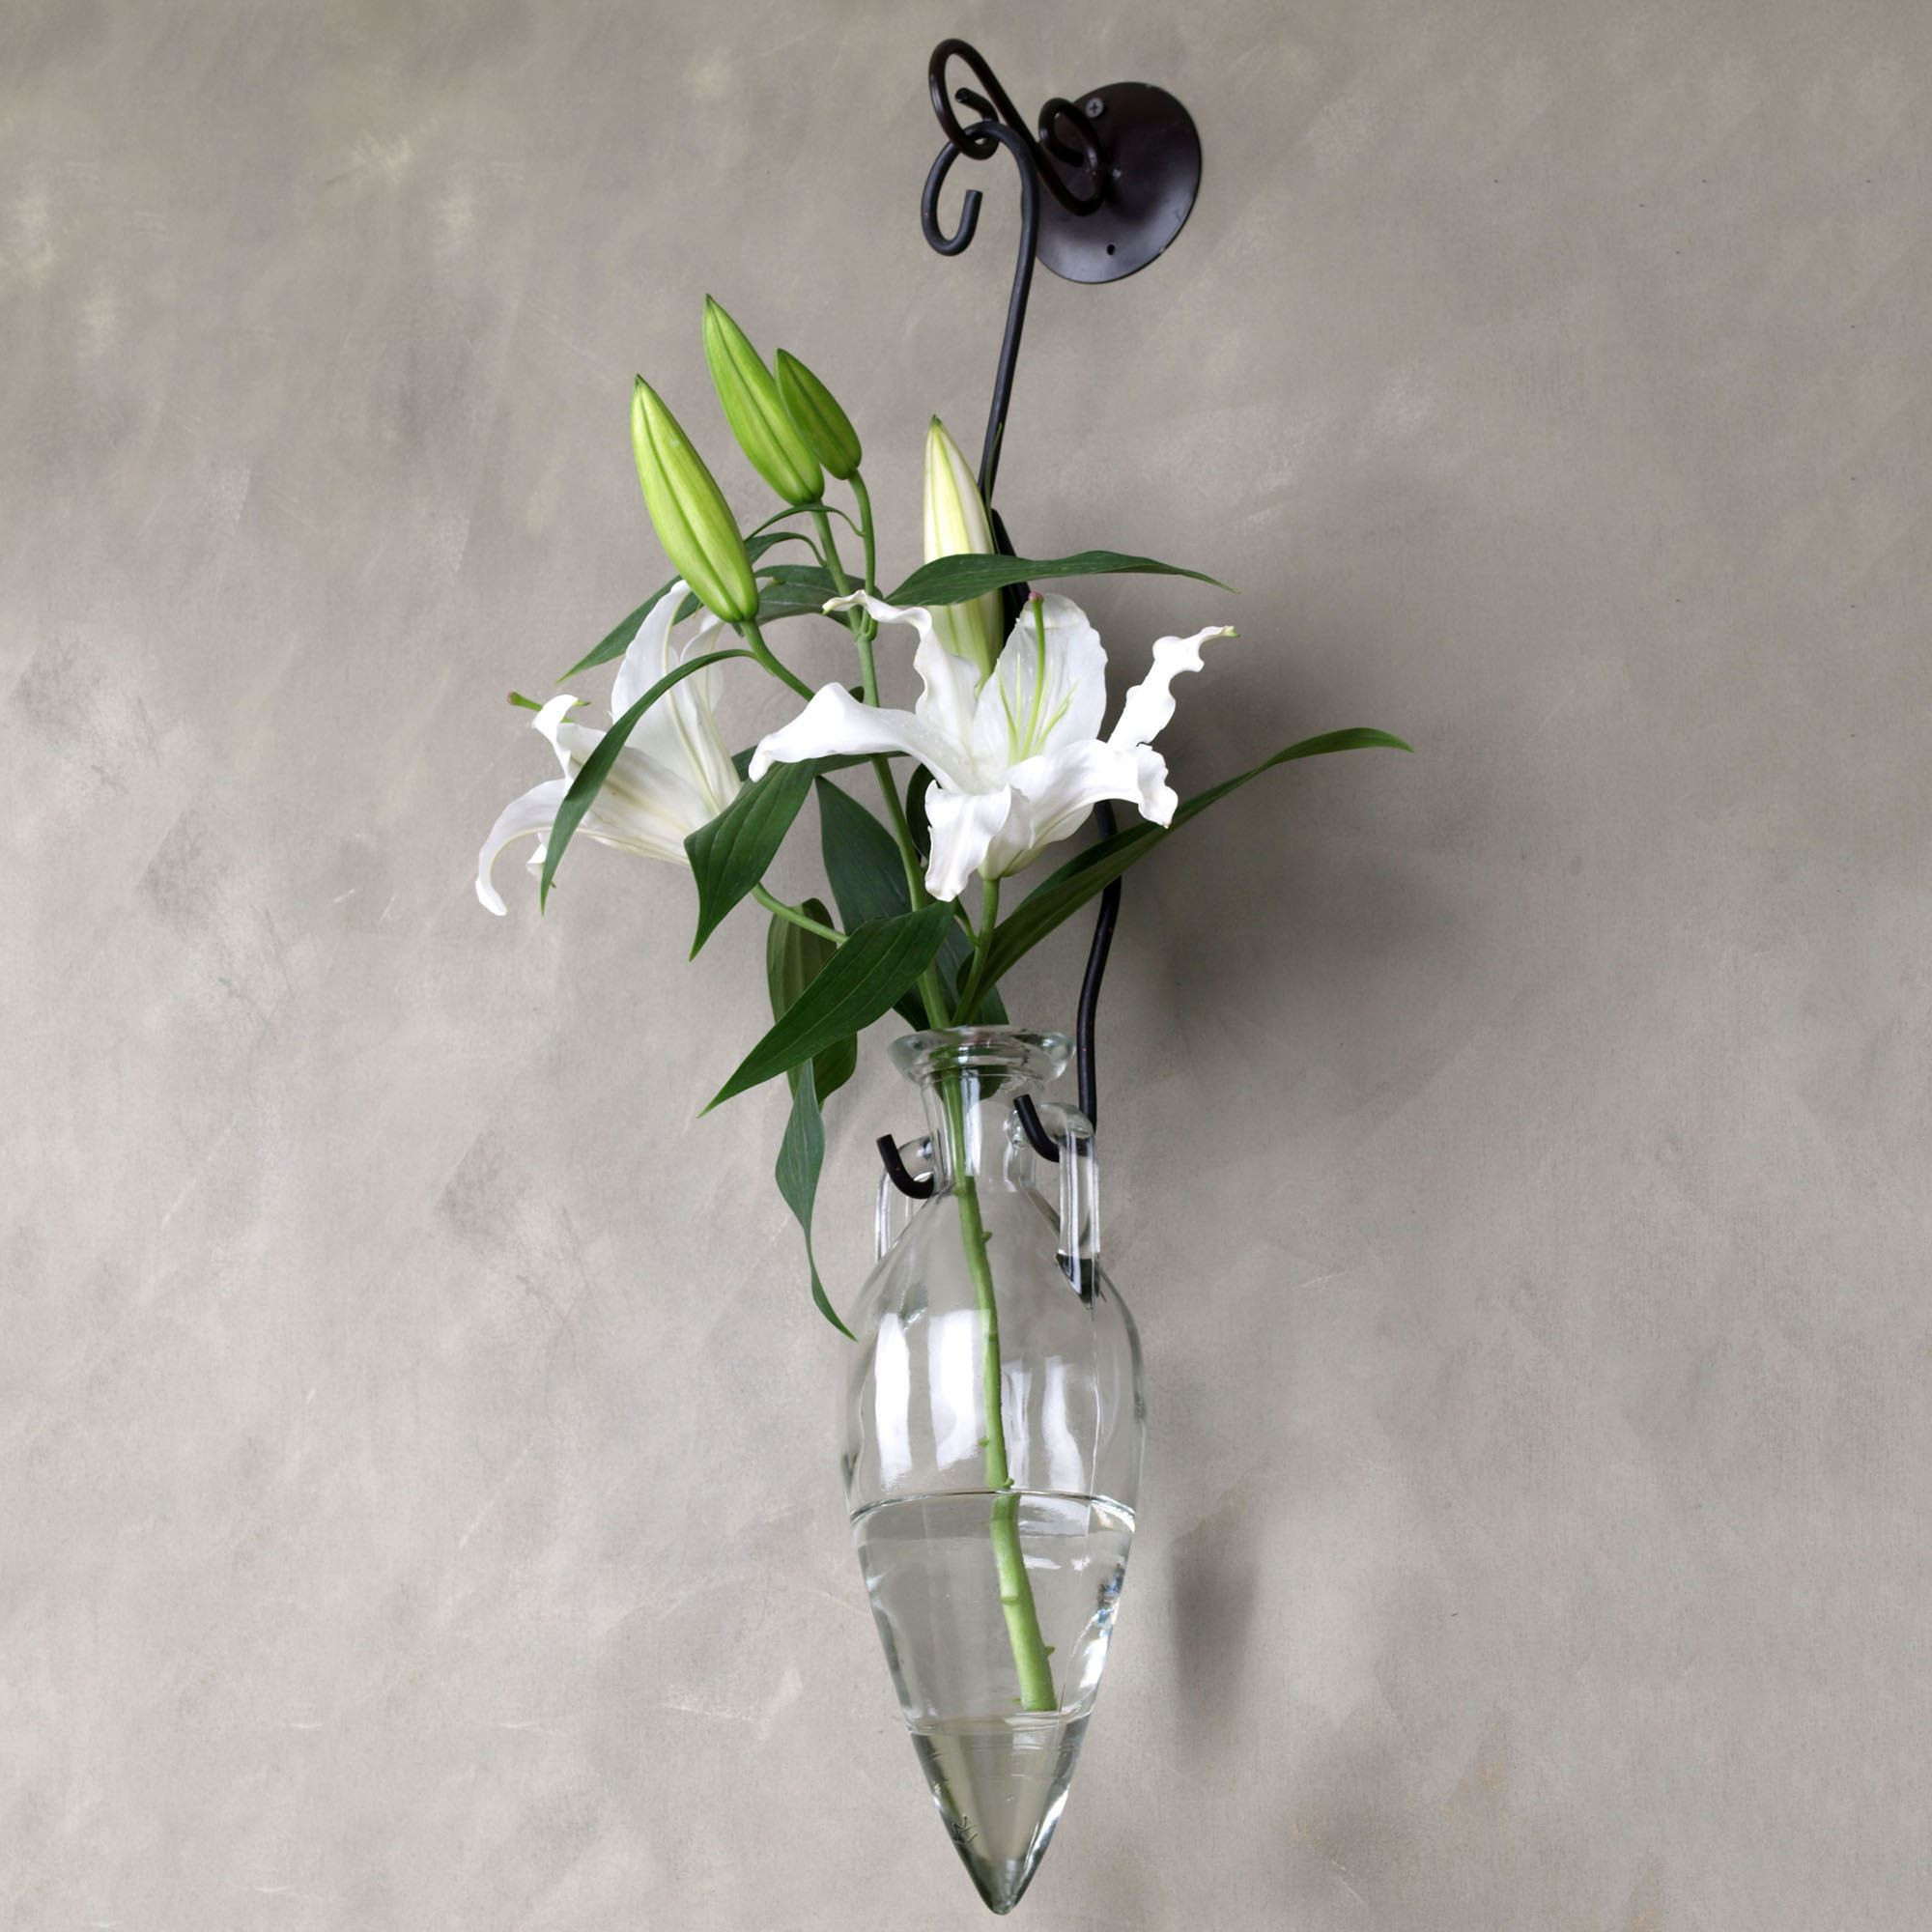 art glass floor vase of collection of hanging glass vases wall vases artificial plants inside hanging glass vases wall gallery h vases wall hanging flower vase newspaper i 0d scheme wall